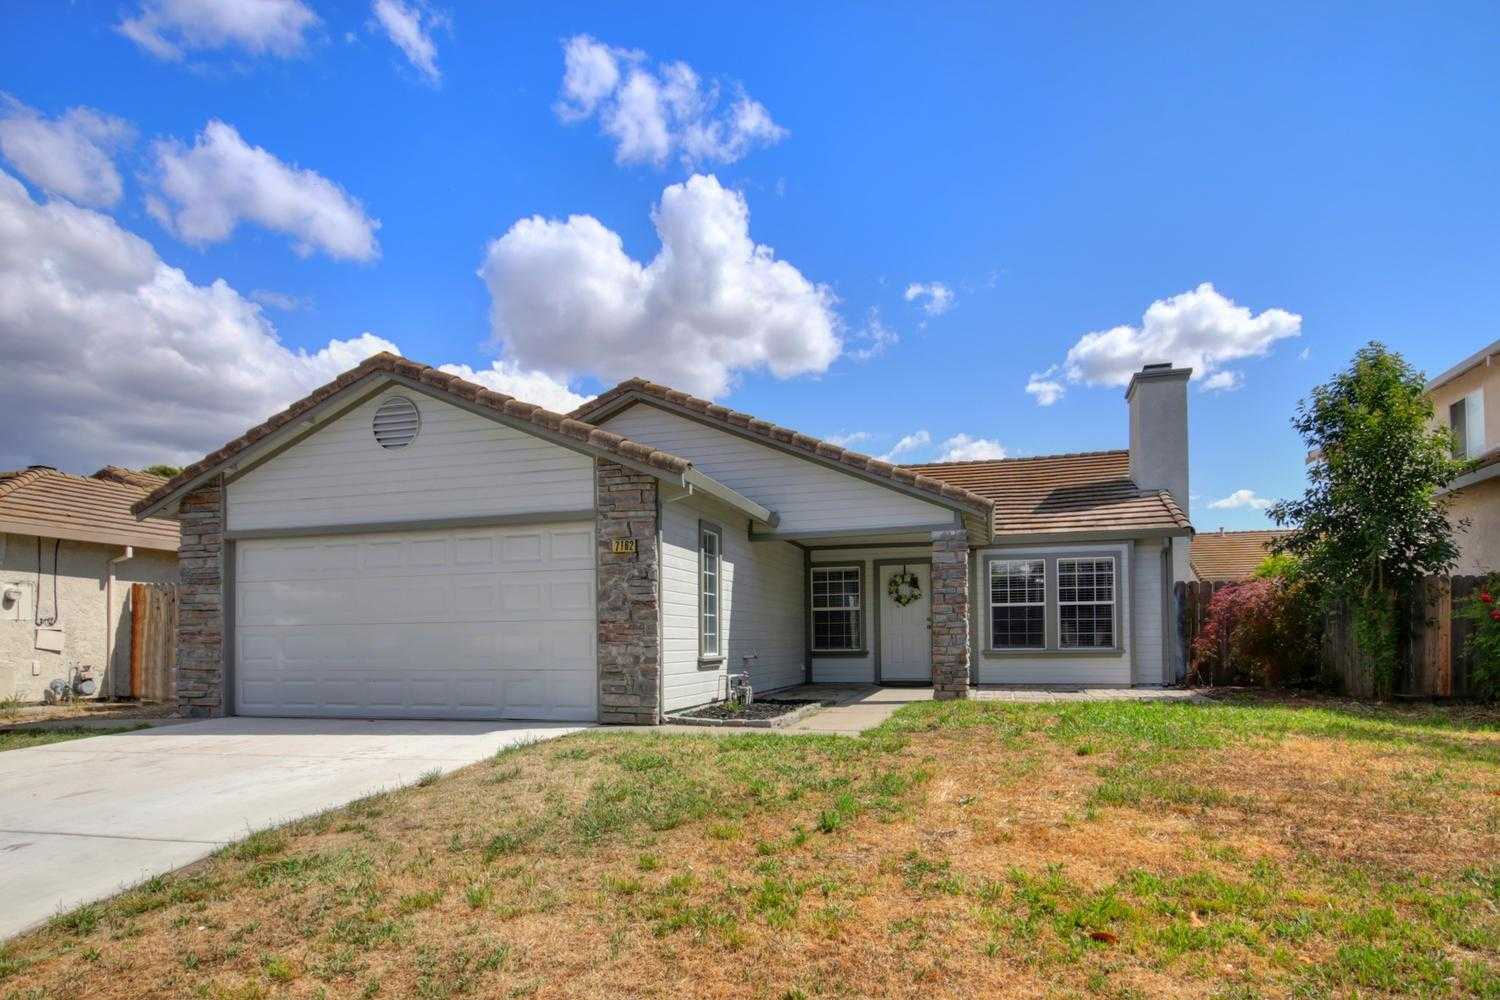 $379,000 - 4Br/2Ba -  for Sale in Stonewood 02, Sacramento